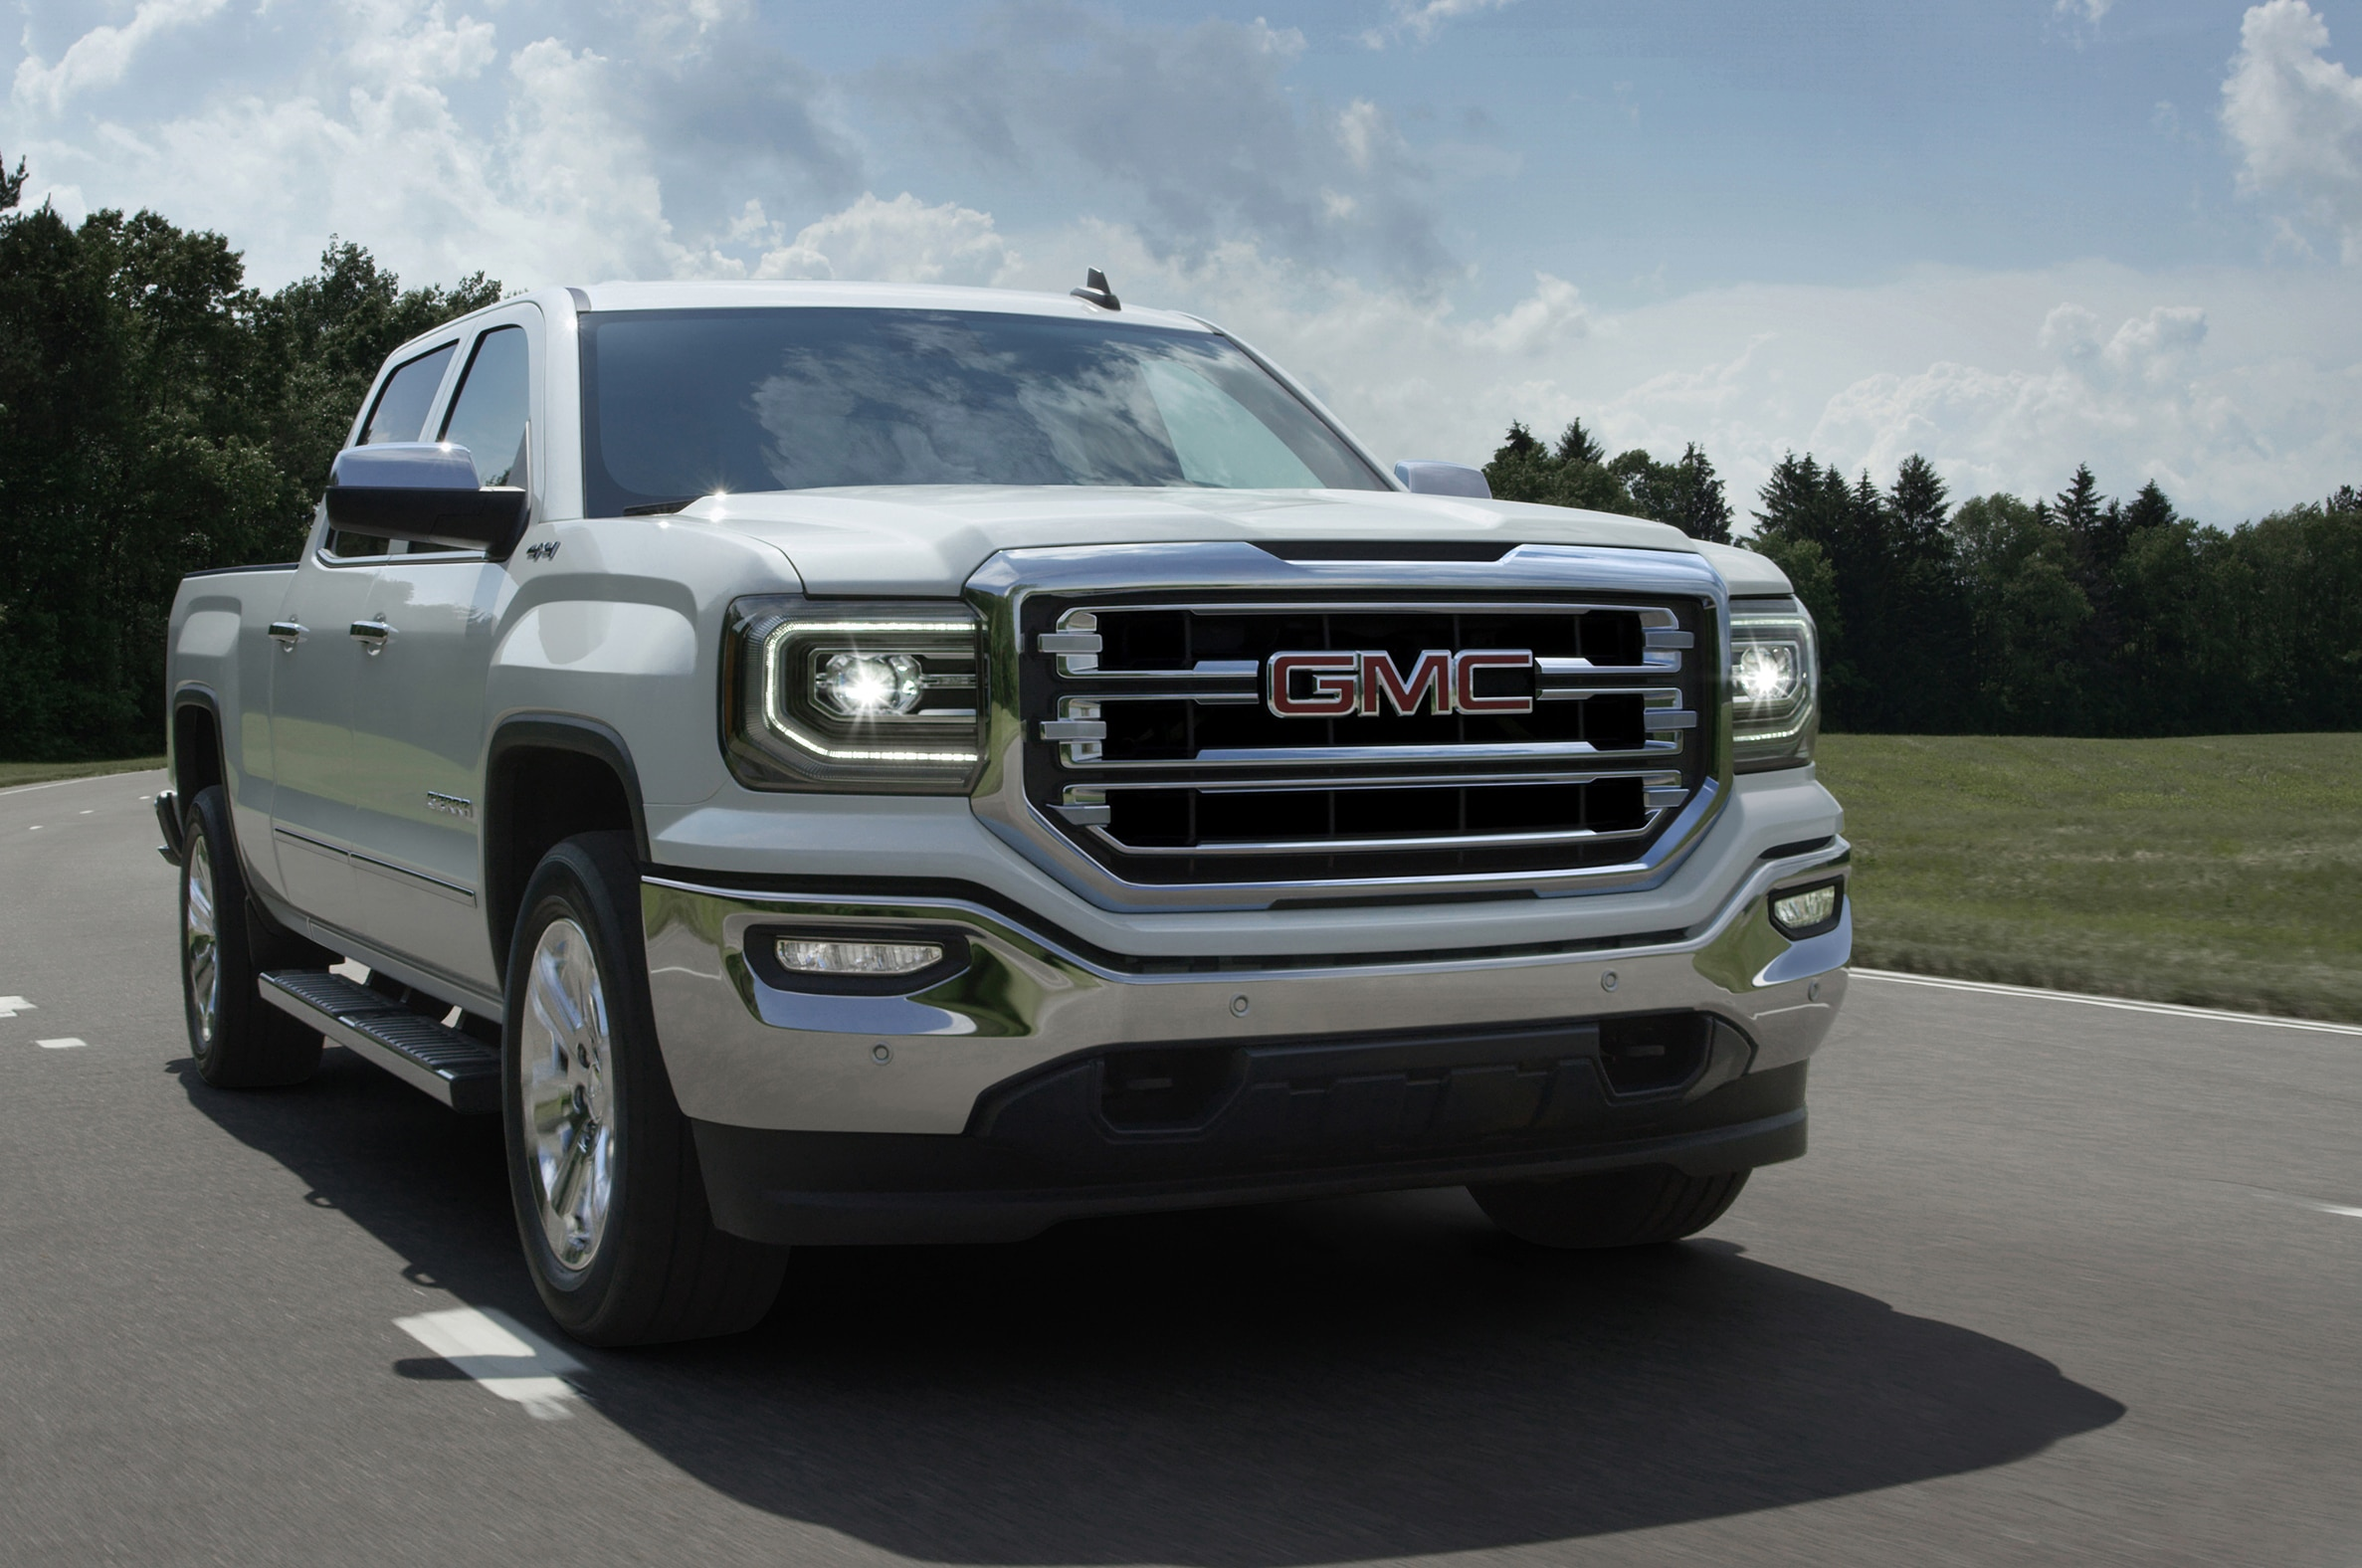 updated 2016 gmc sierra elevation edition revealed in texas. Black Bedroom Furniture Sets. Home Design Ideas